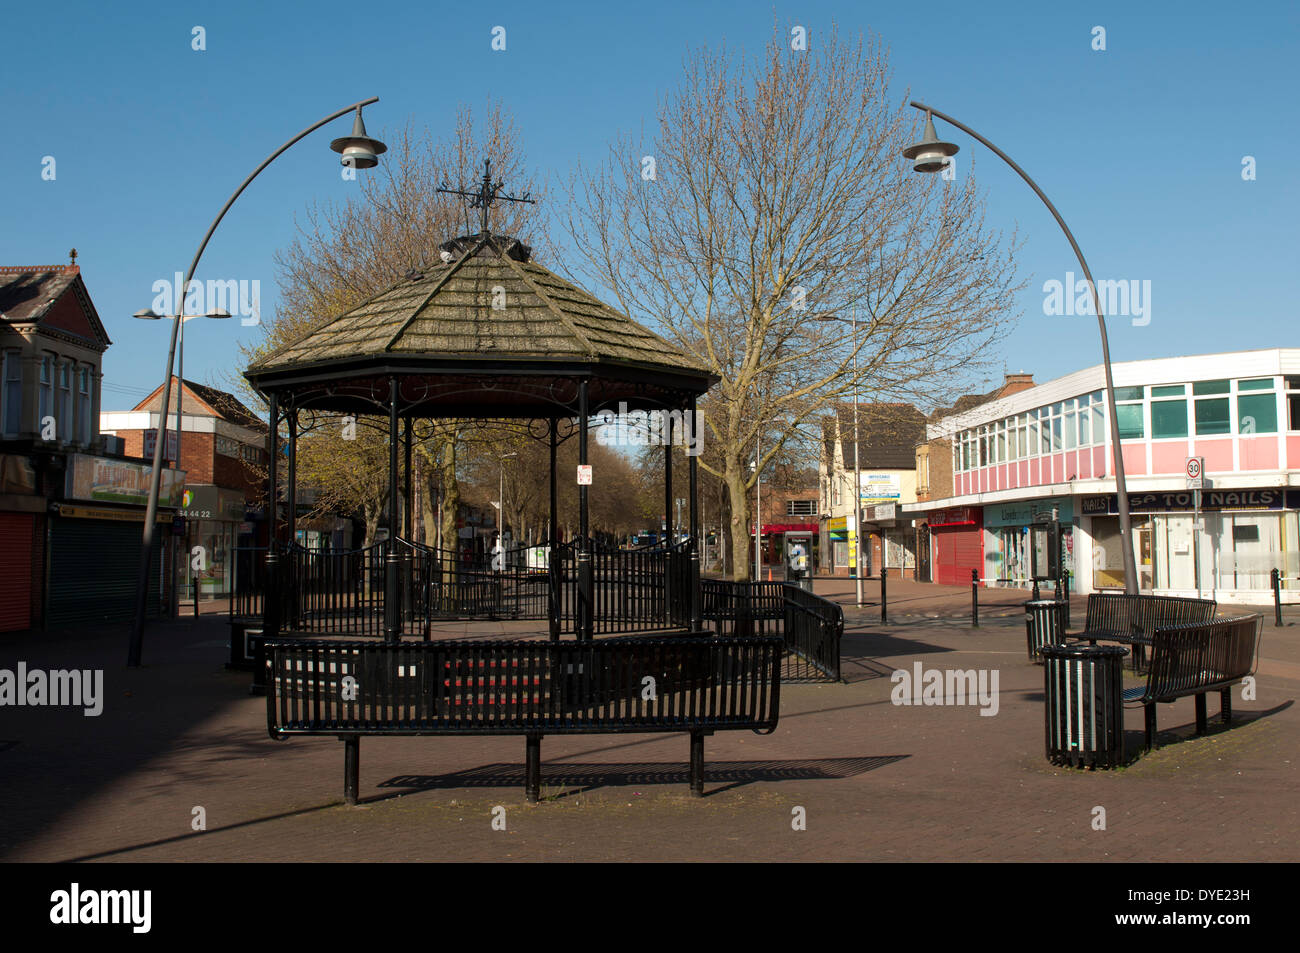 The bandstand and Queensway, Bletchley, Buckinghamshire, England, UK - Stock Image